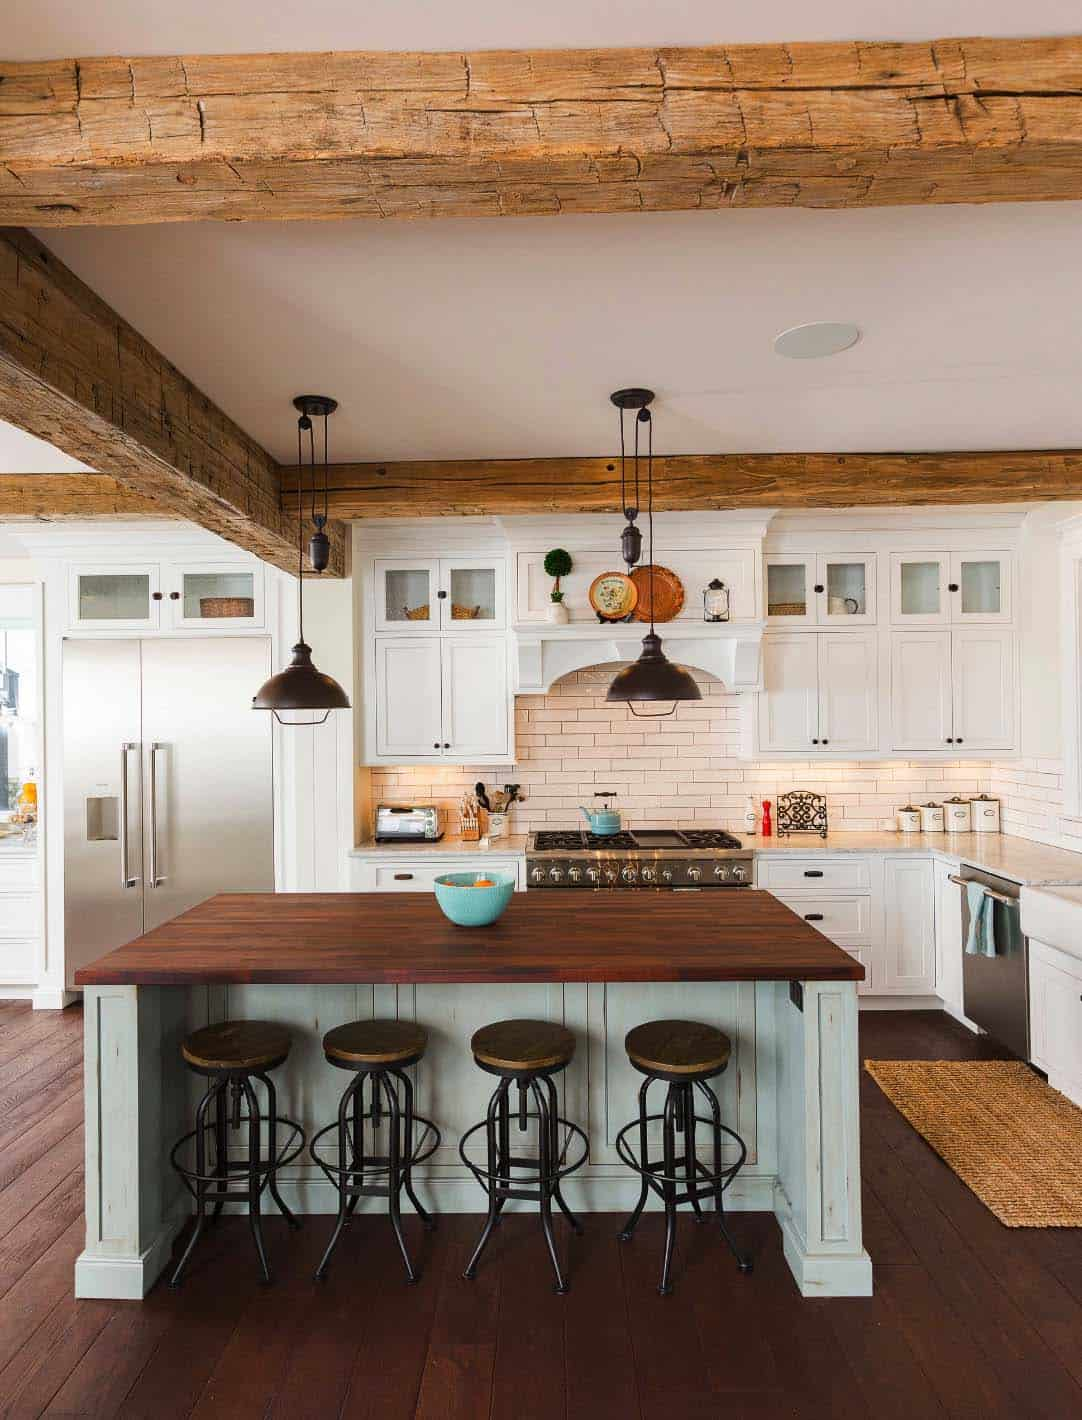 Farmhouse kitchen with white shaker cabinets, wood beams and white island